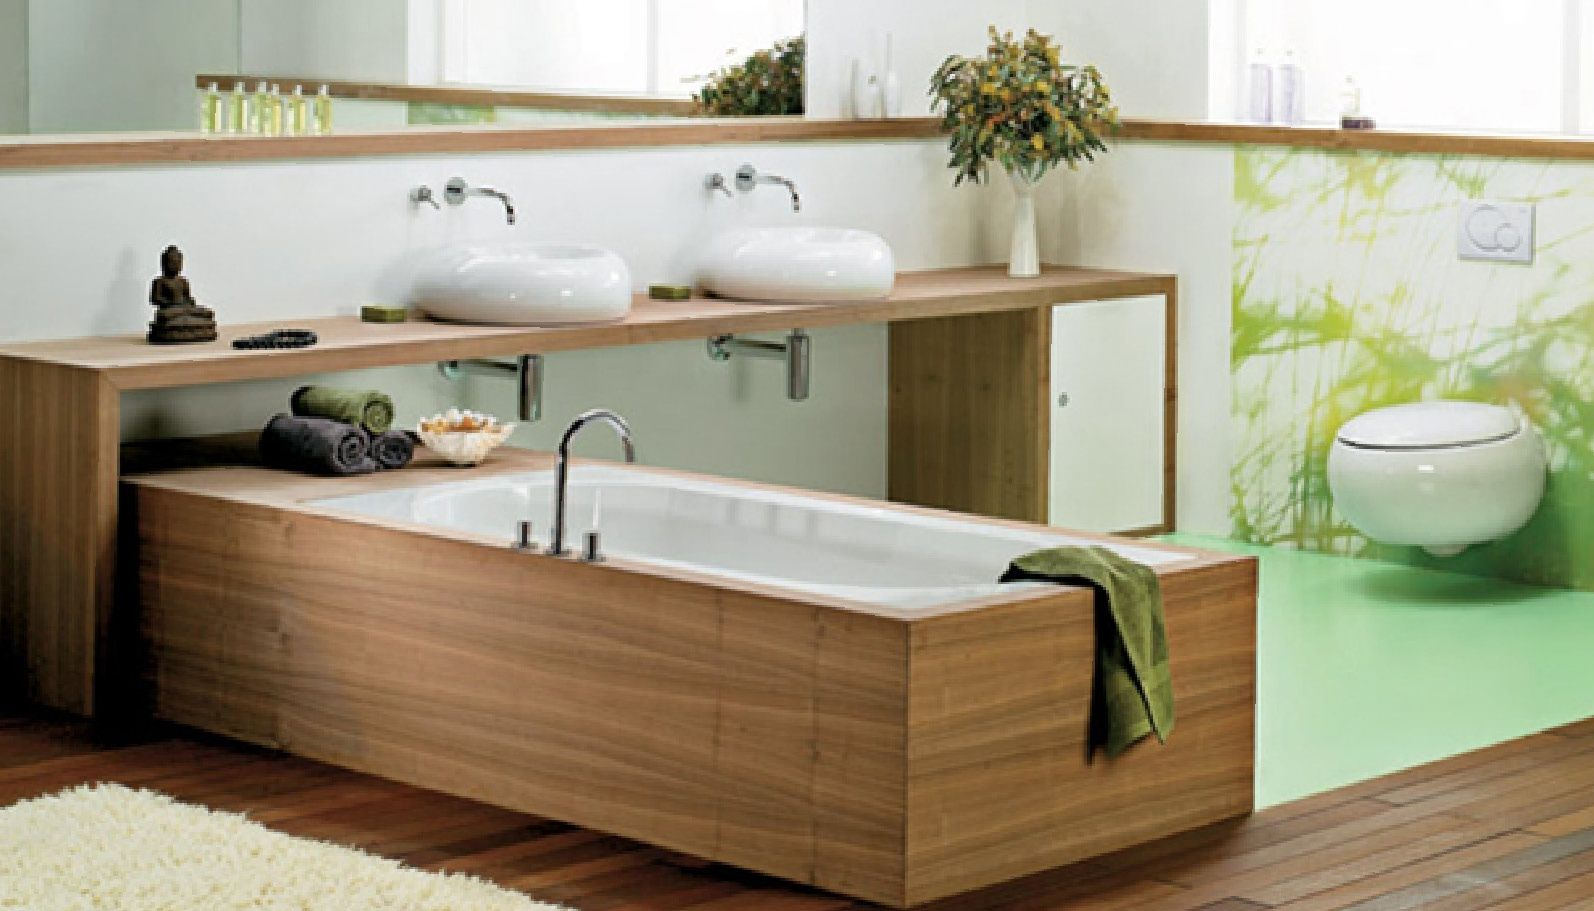 This woodframed bathtub has an inviting saunalike feel about it